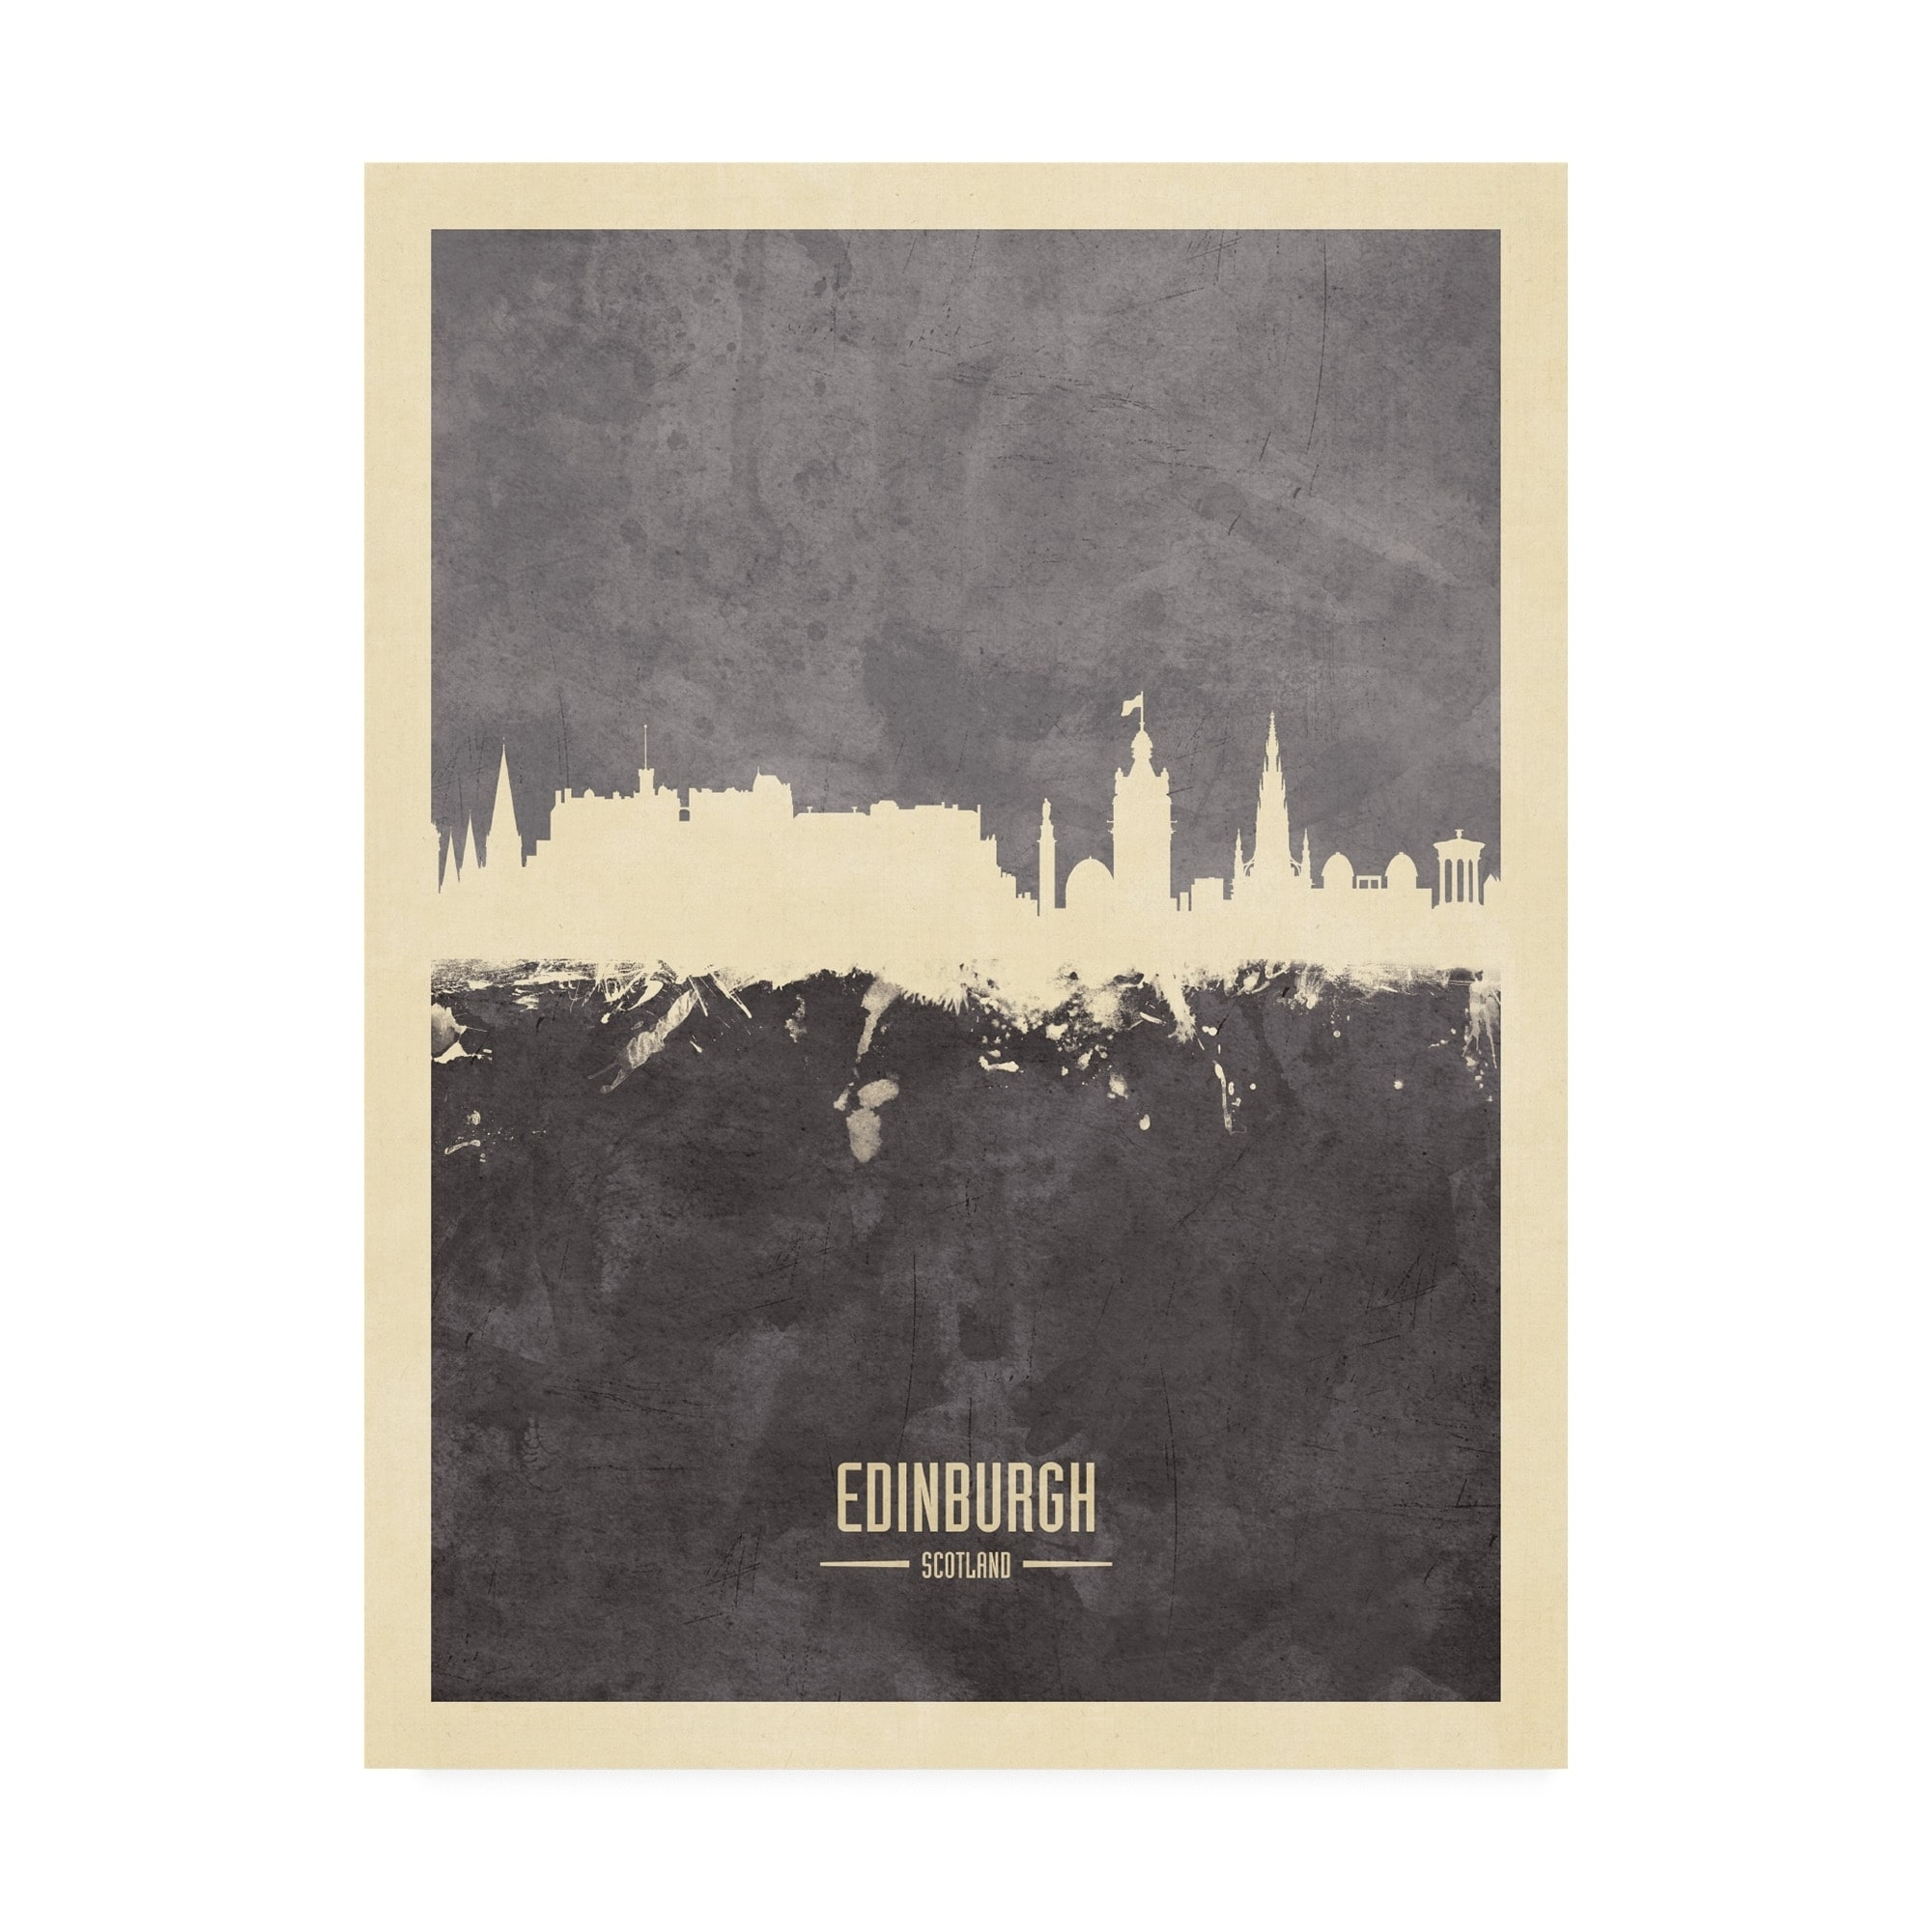 Edinburgh Bright Cityscape Large Wall Art Print 18X24